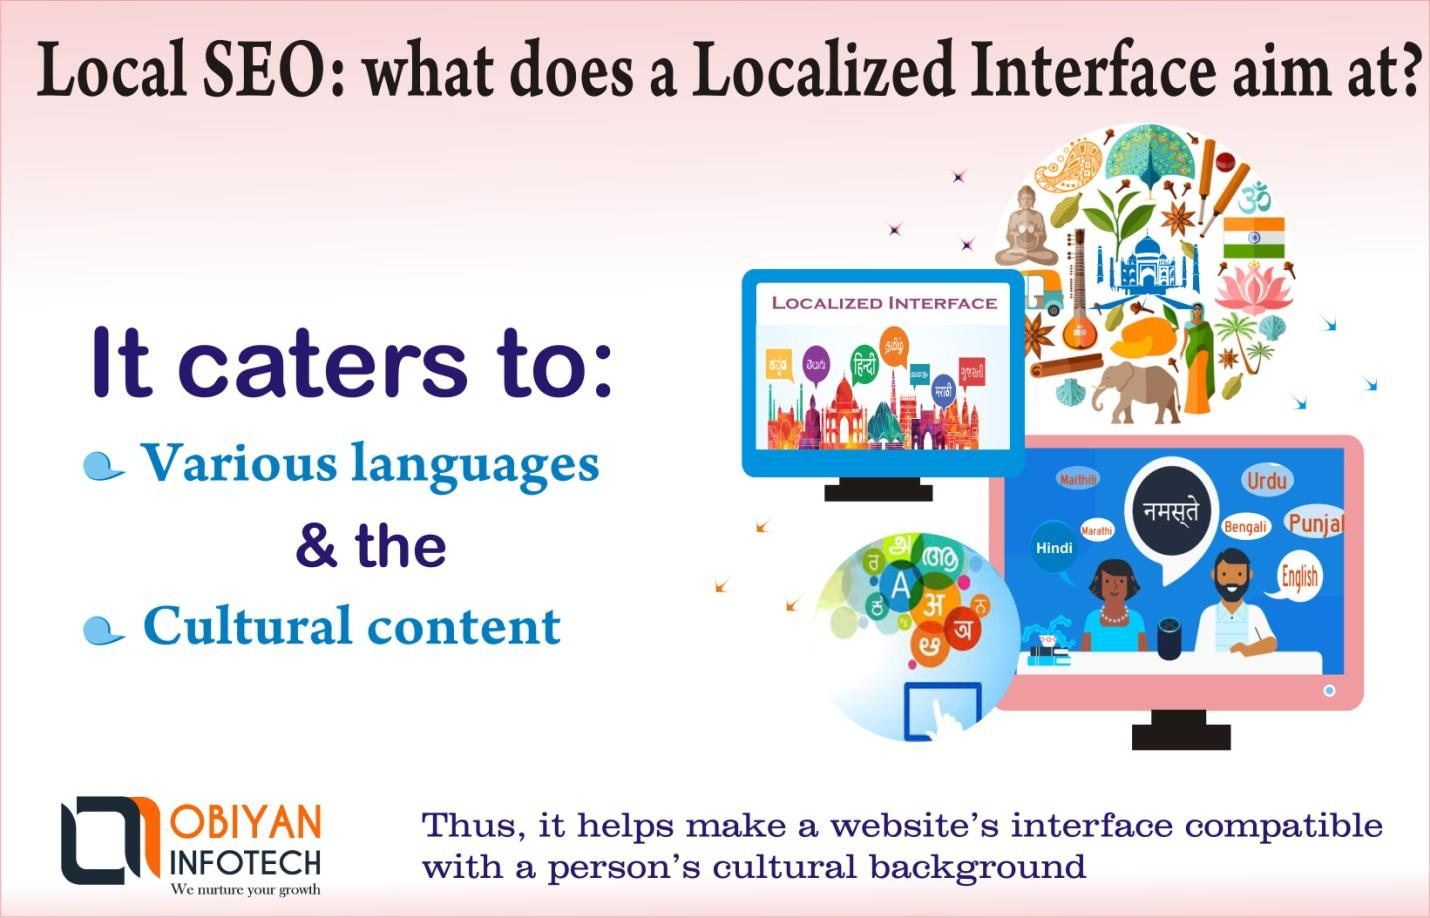 A Localized Interface may go a great way to enhance the local SEO